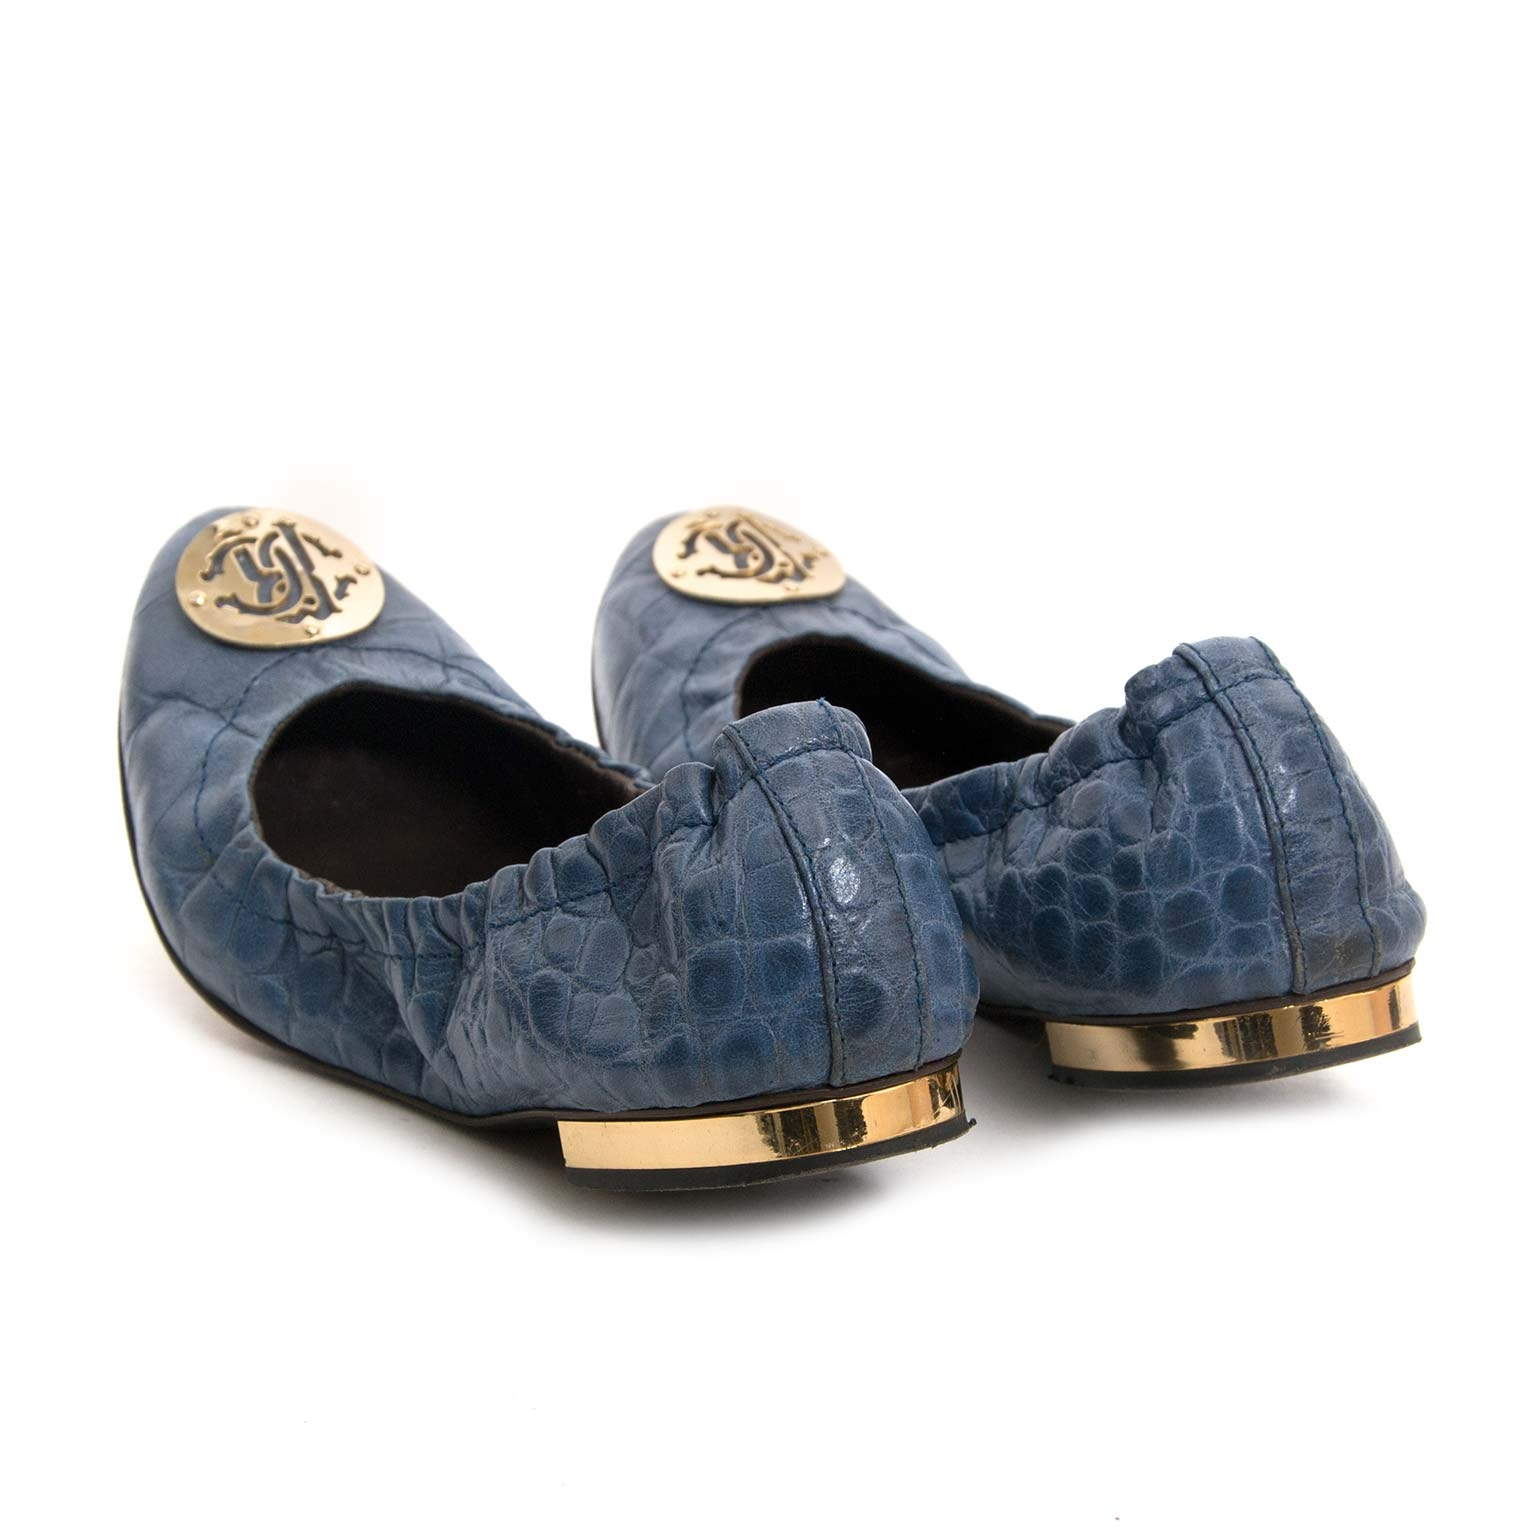 roberto cavalli blue leather ballet flats now for sale at labellov vintage fashion webshop belgium